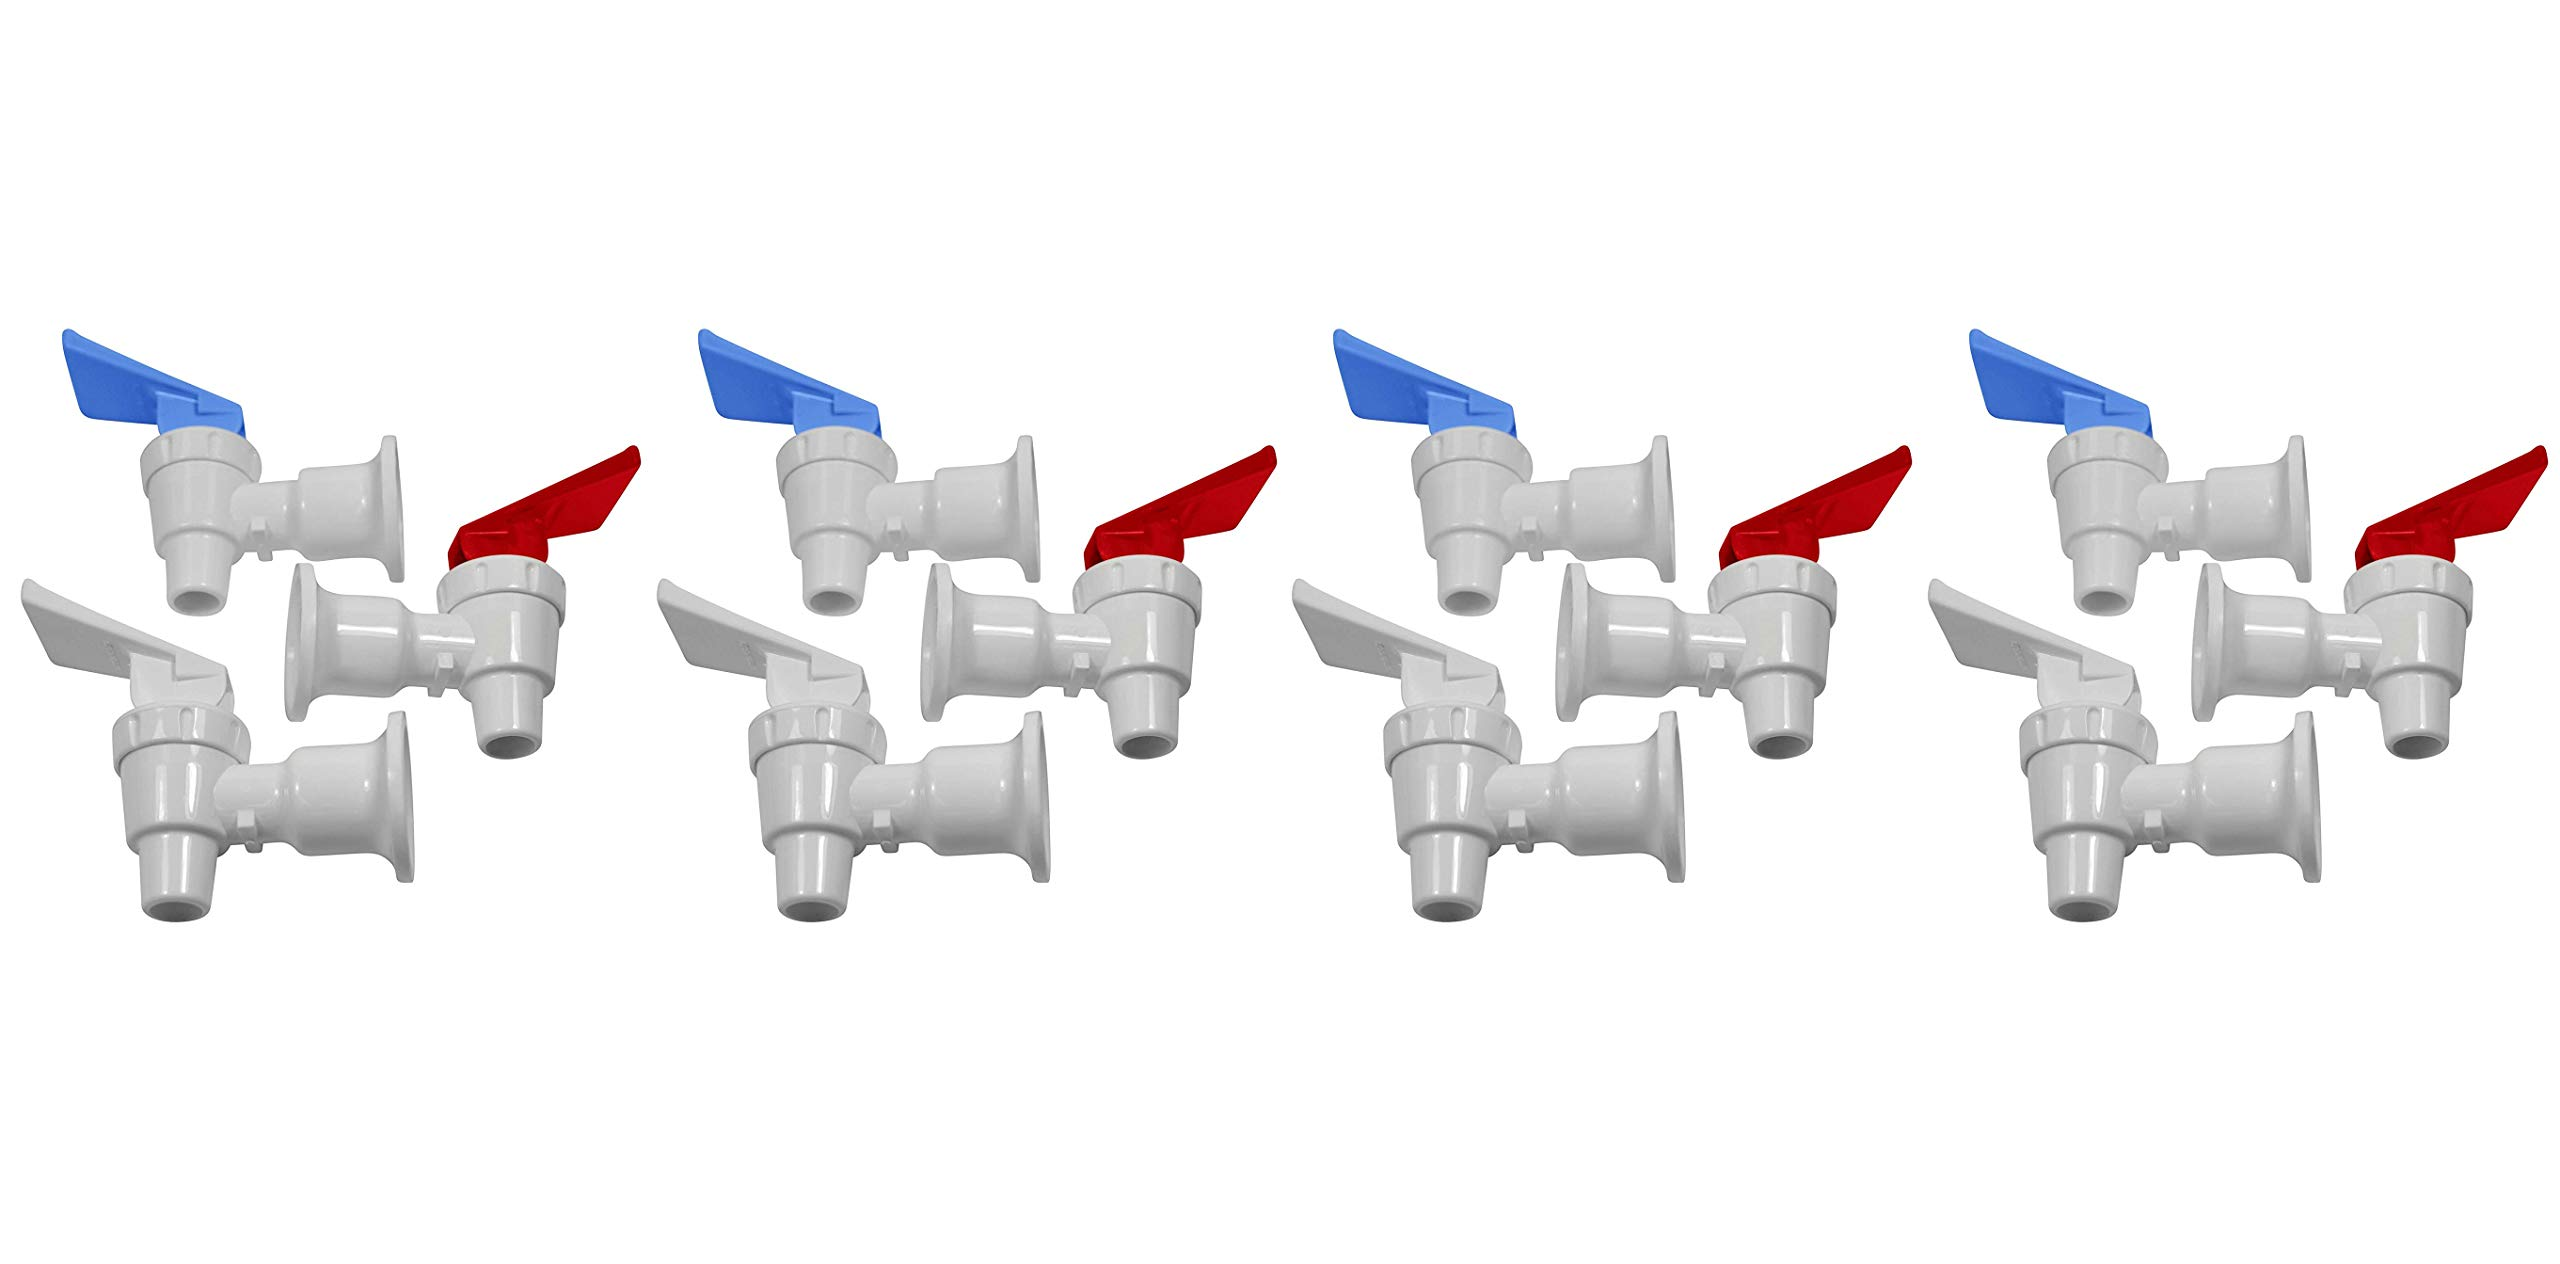 Smart Packs by OCSParts RWB217 Sunbeam Water Cooler Faucet, Tomlinson Blue/Red and White Handle, Combo Pack (Pack of 3) (Fоur Paсk) by Smart Packs by OCSParts